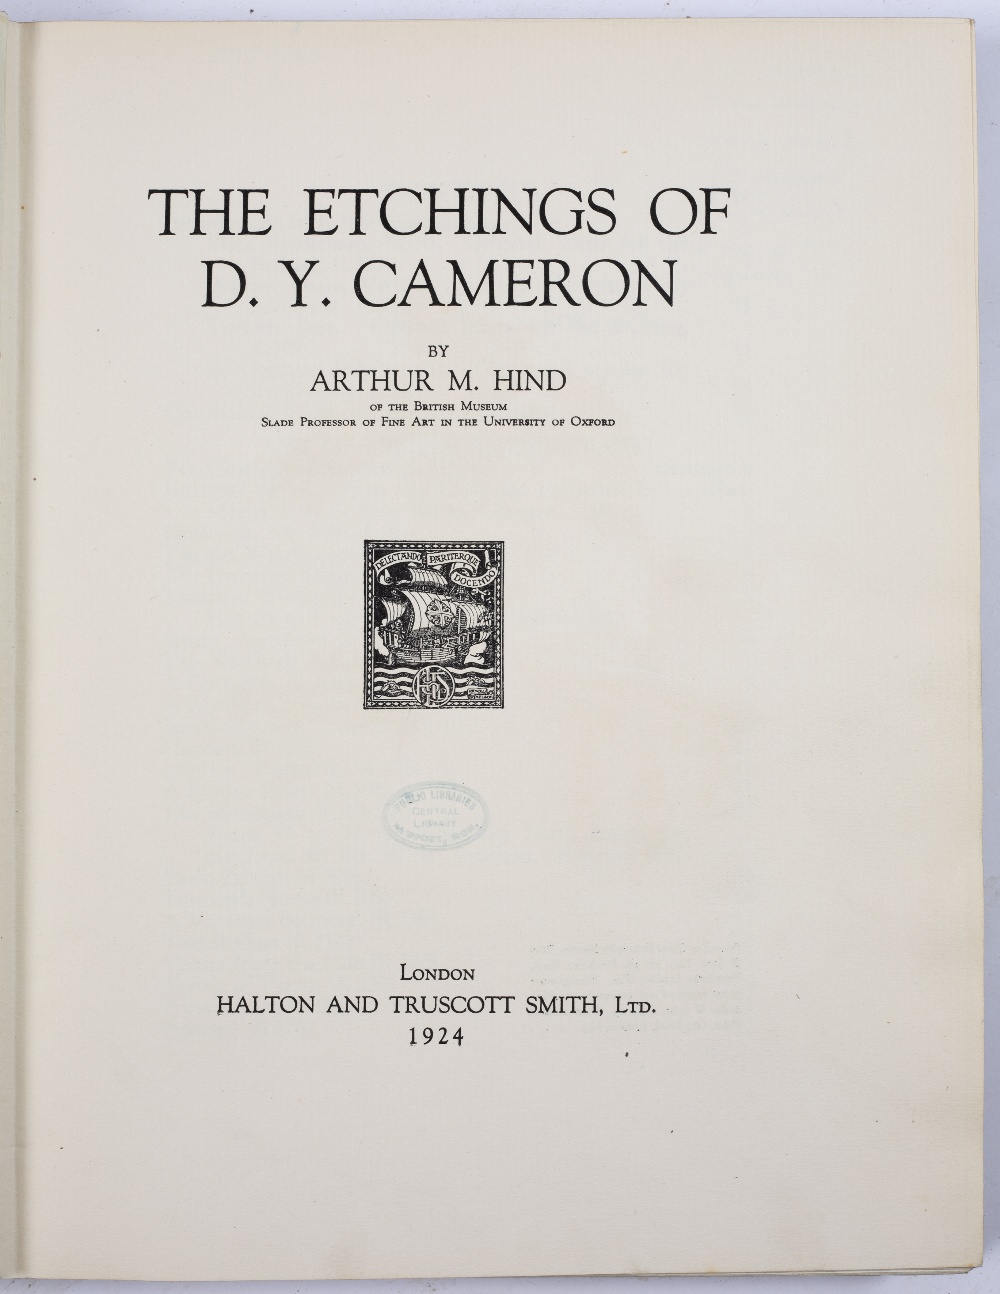 HIND, Arthur M, The Etchings of D.Y. Cameron, Halton & Truscott Smith, London 1924. 4to. Gilt tooled - Image 2 of 5